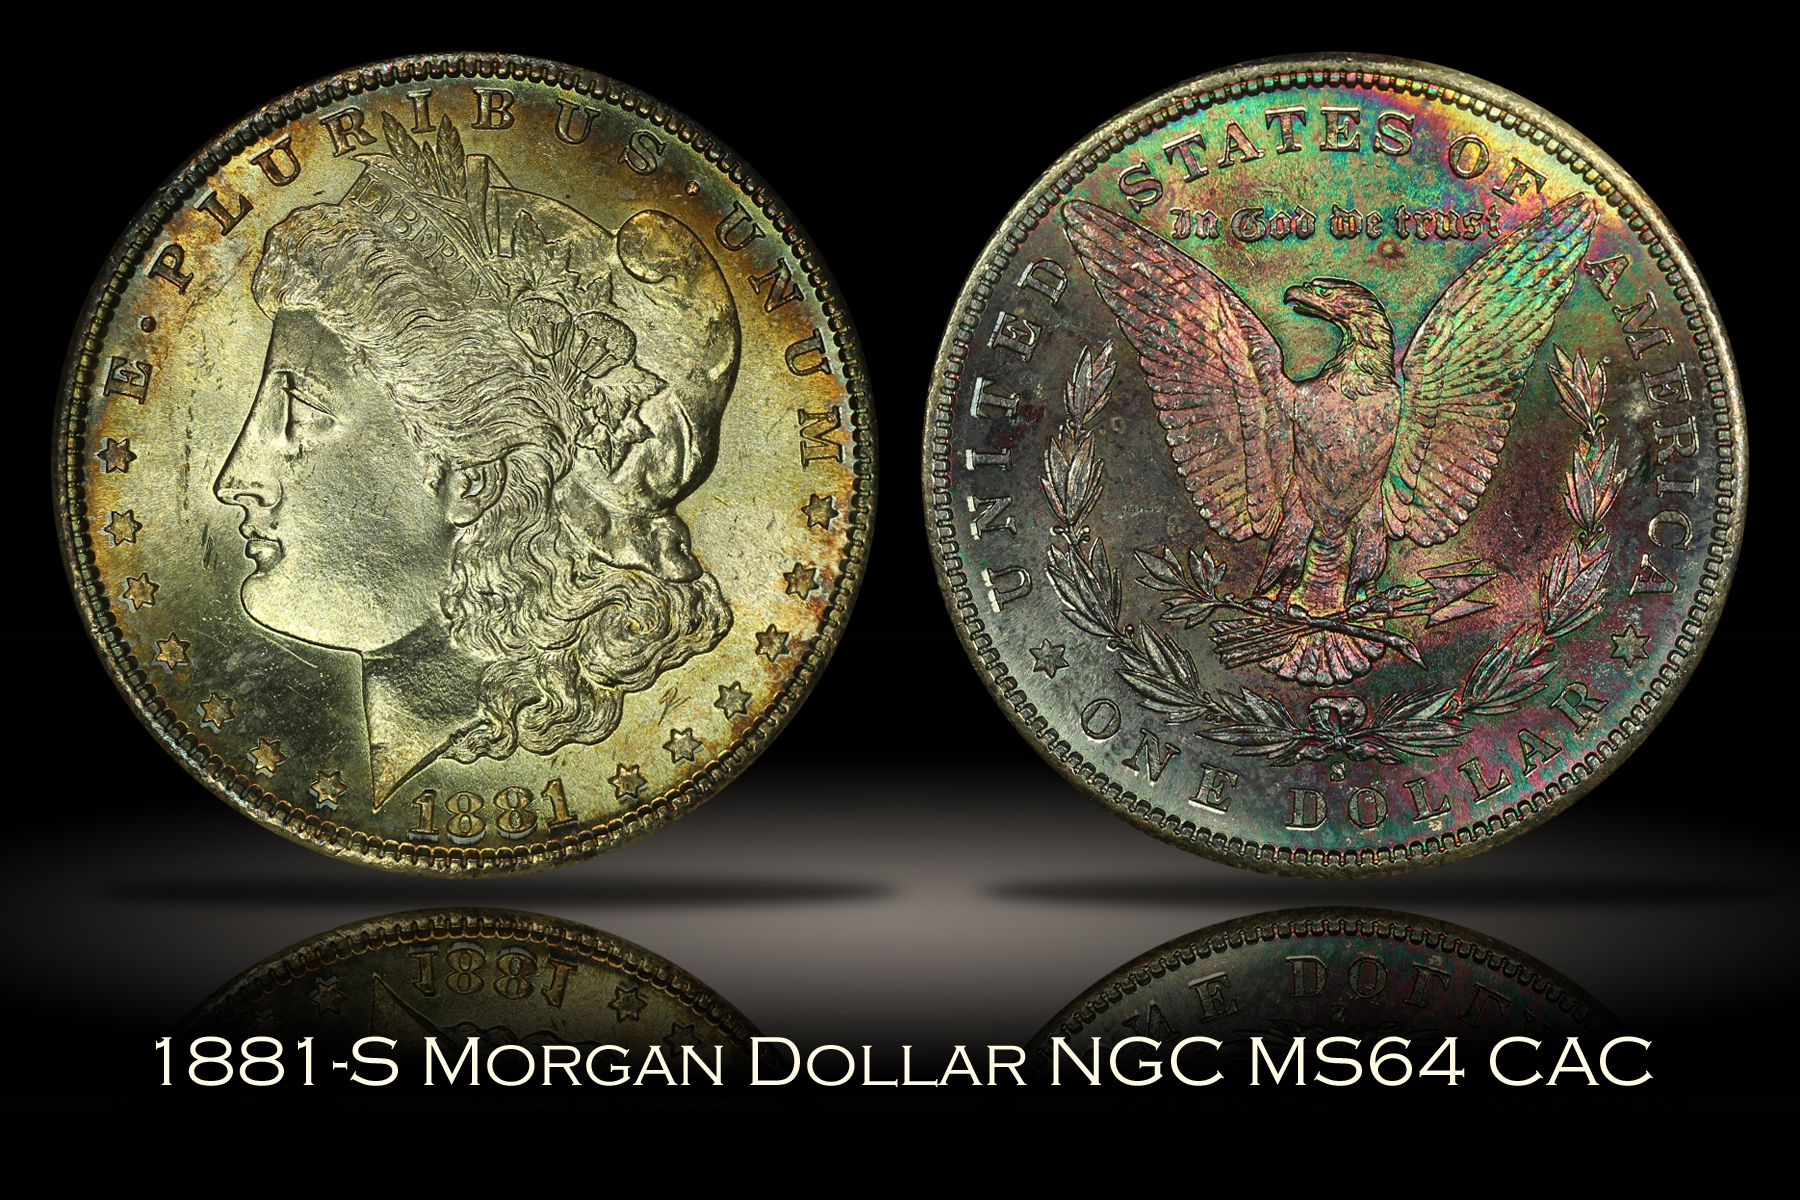 1881-S Morgan Dollar NGC MS64 CAC